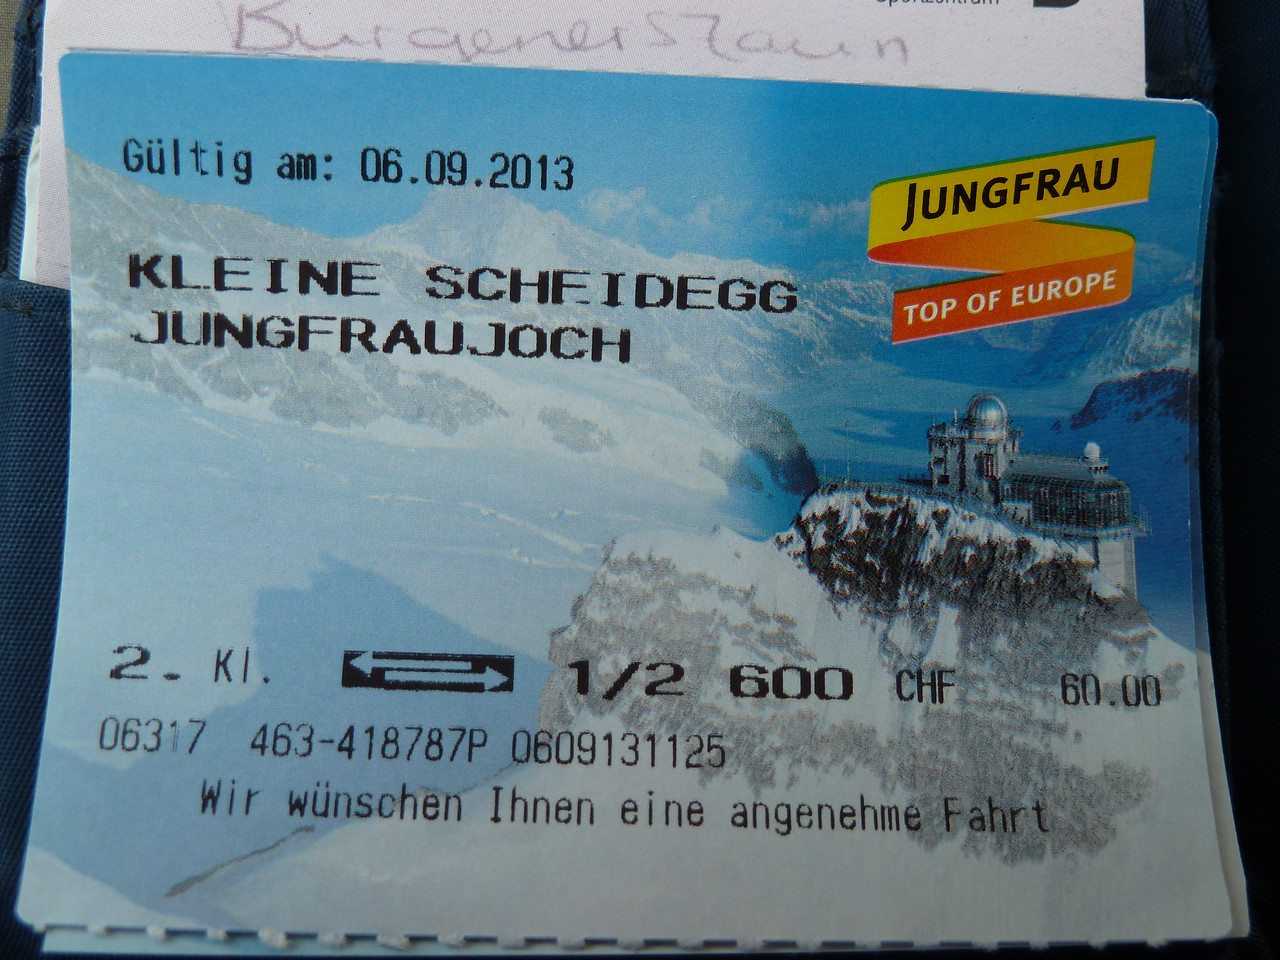 Going up to the Jungfraujoch with the train!!